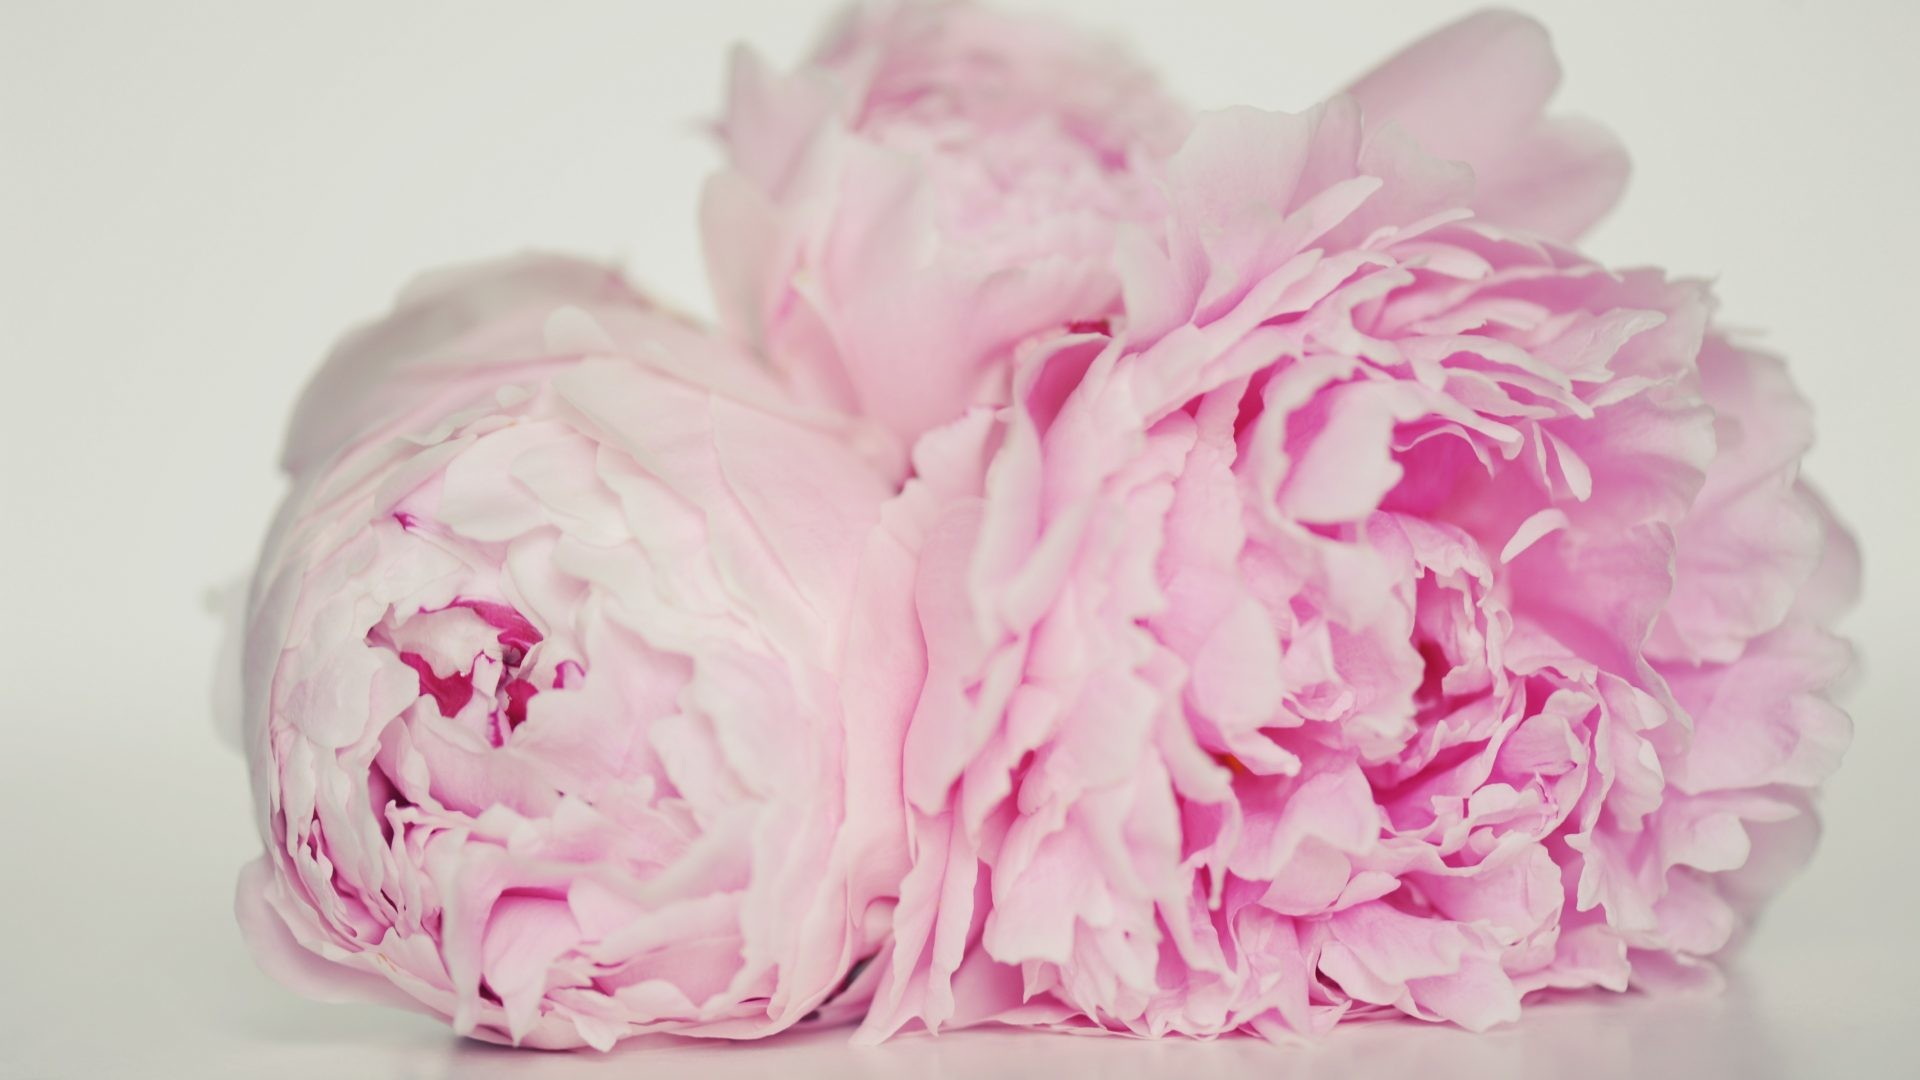 pink peony flowers wallpaper - flowers healthy